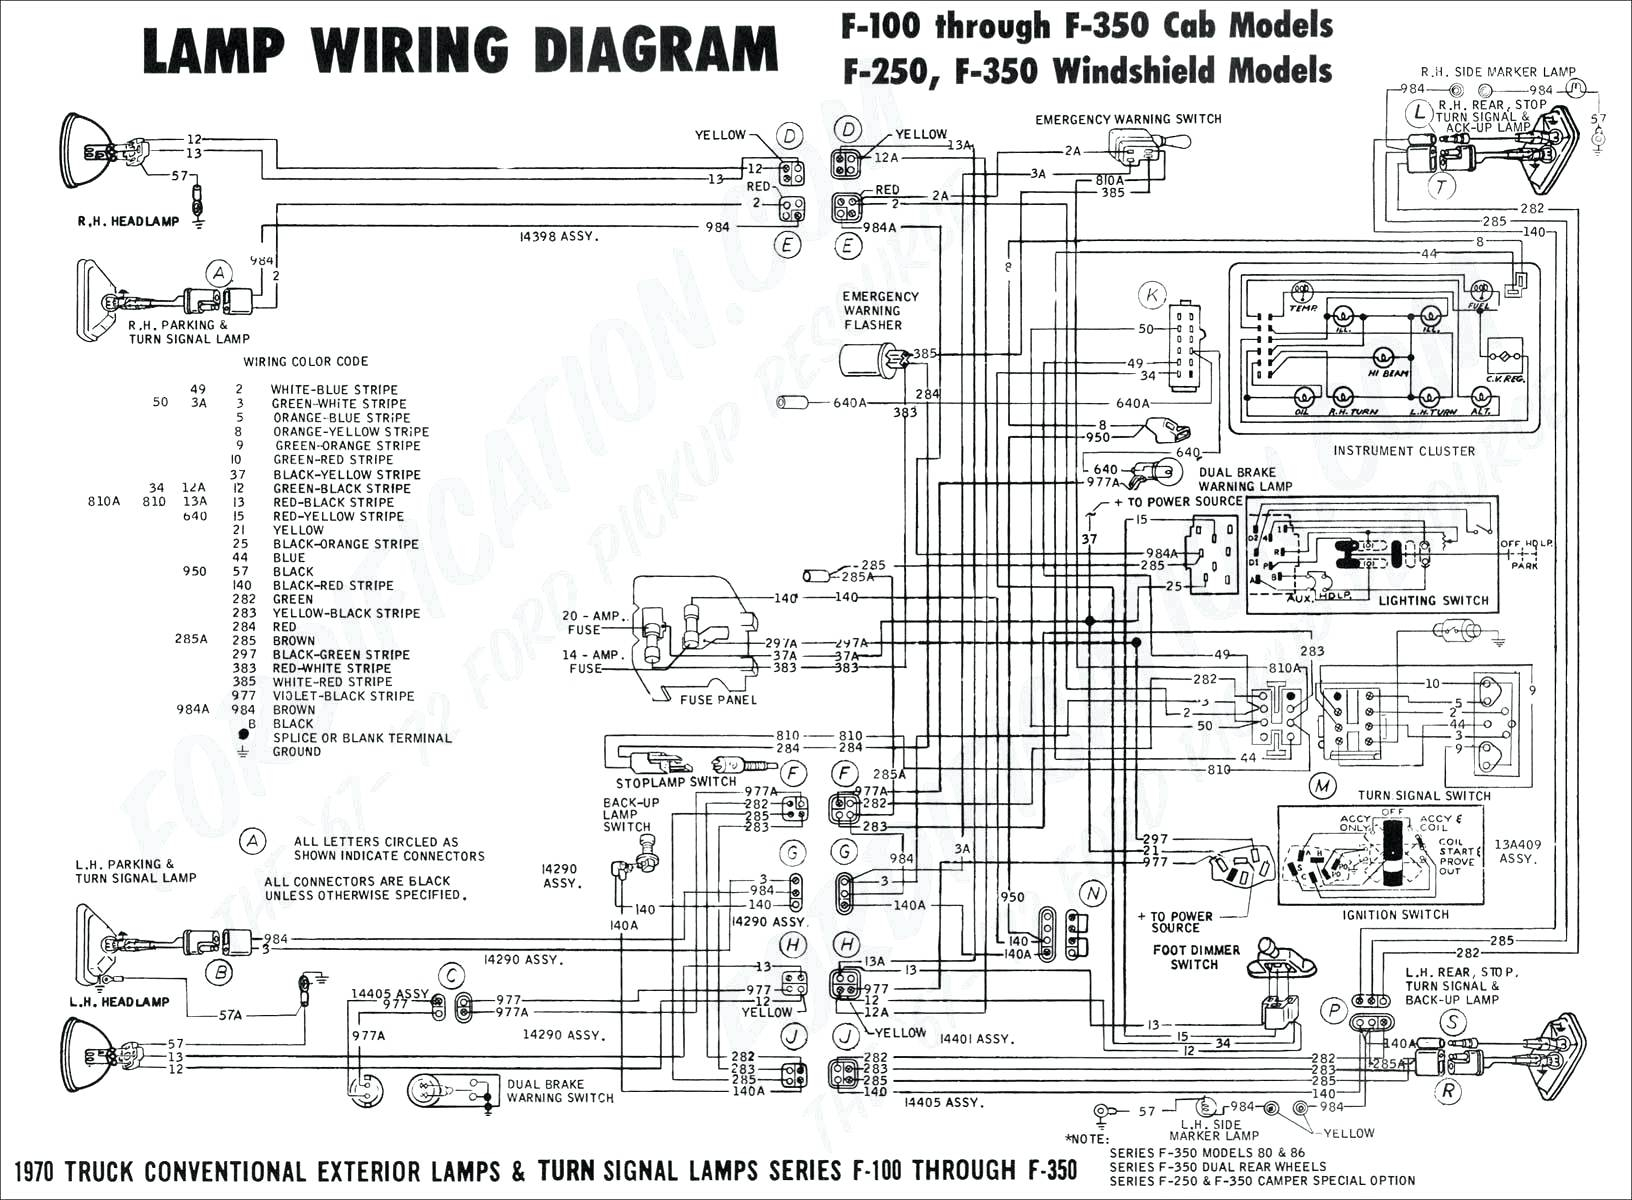 diagram] 2000 dodge ram 2500 wiring diagram full version hd quality wiring  diagram - pistolschematic.bellroma.it  bellroma.it